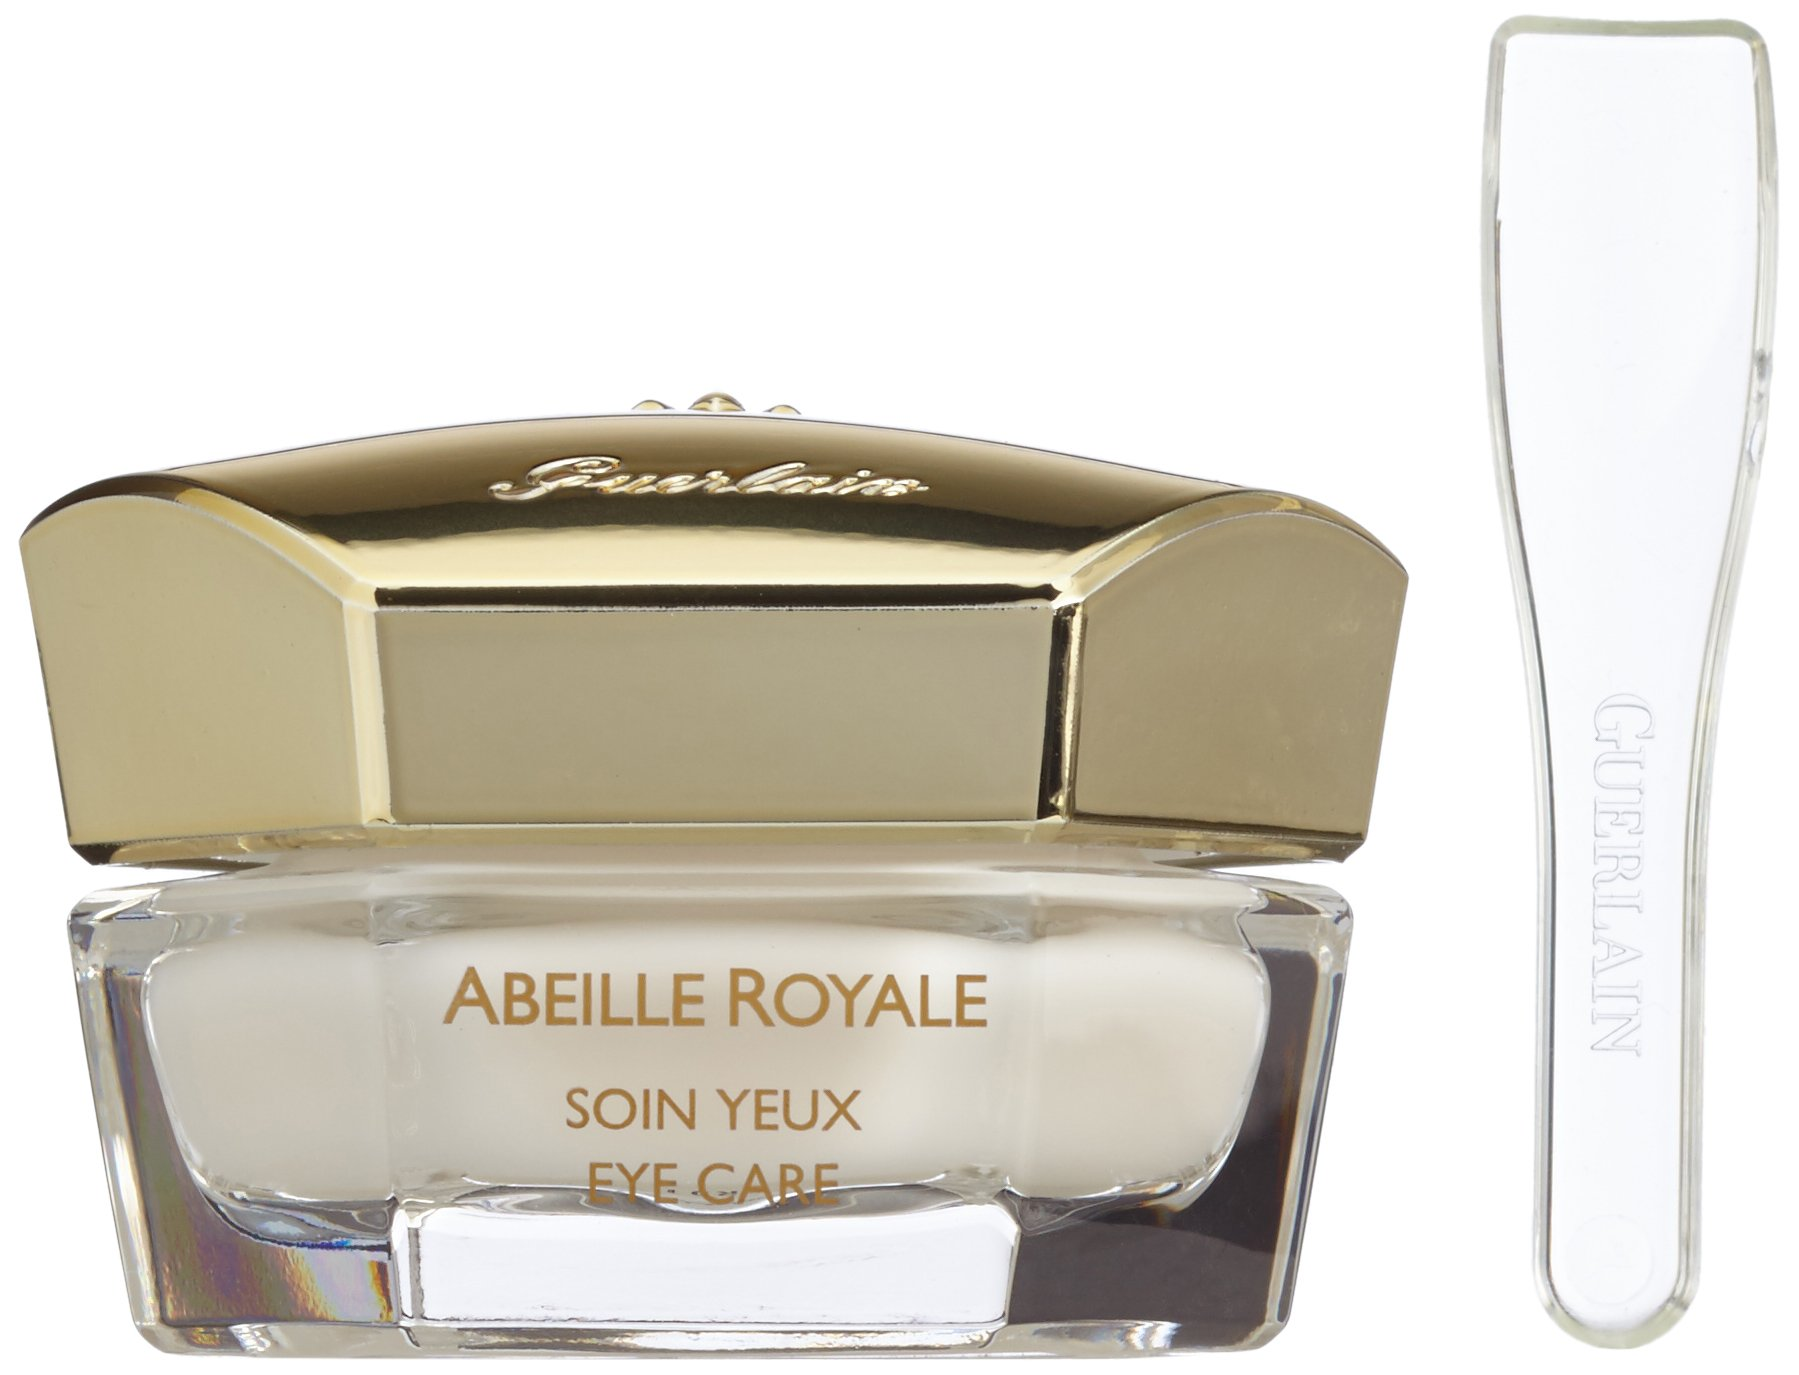 Guerlain Abeille Royale Up Lifting Eye Care Women Eye Care, 0.5 Ounce